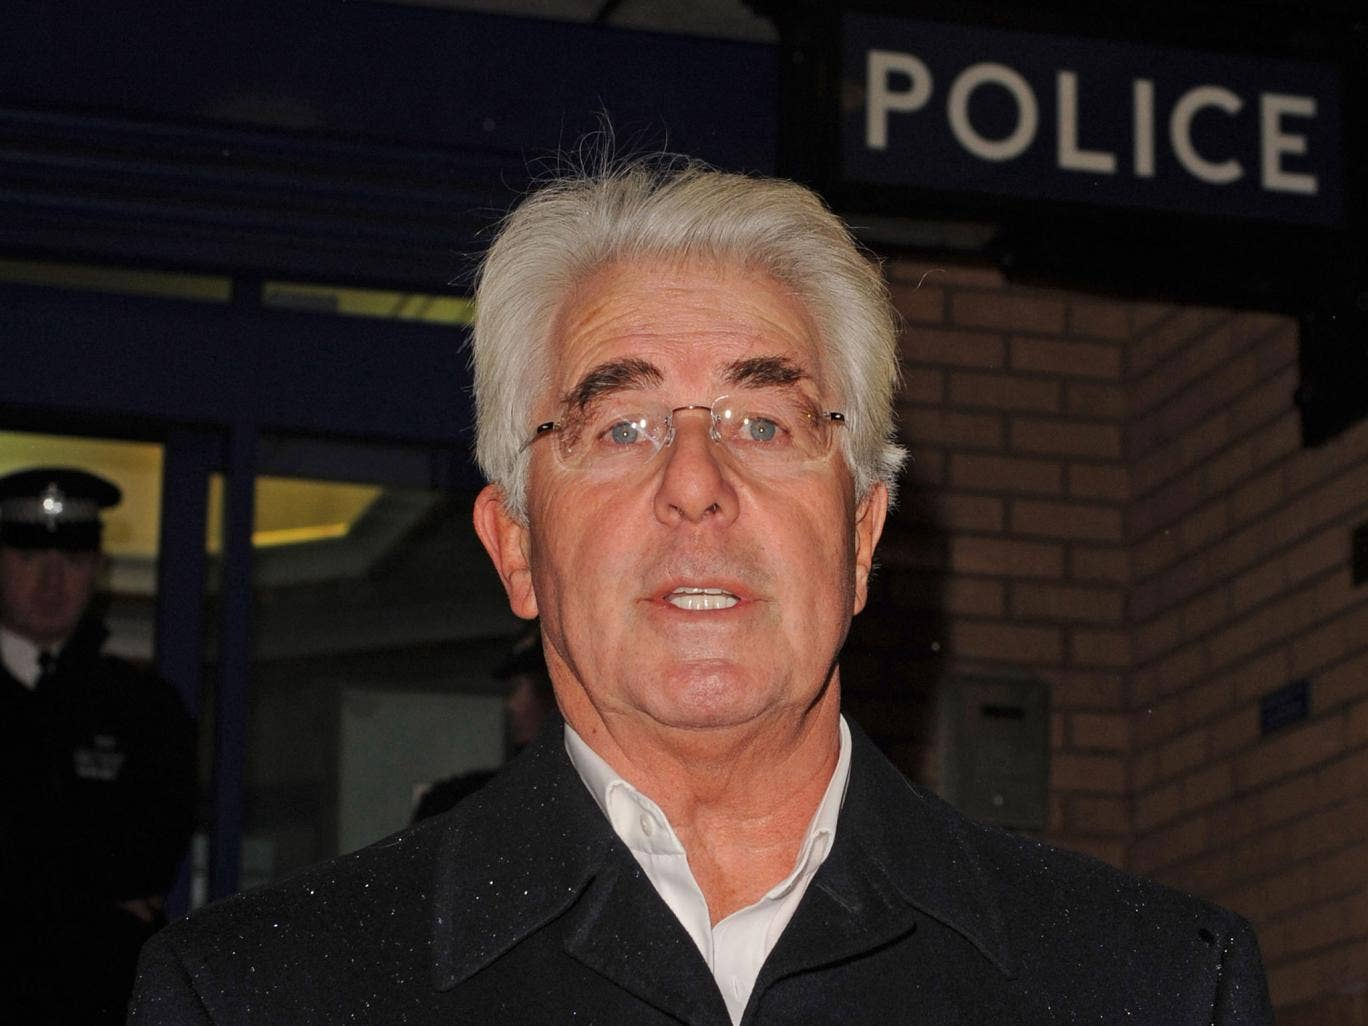 Max Clifford is accused of 11 counts of indecent assault